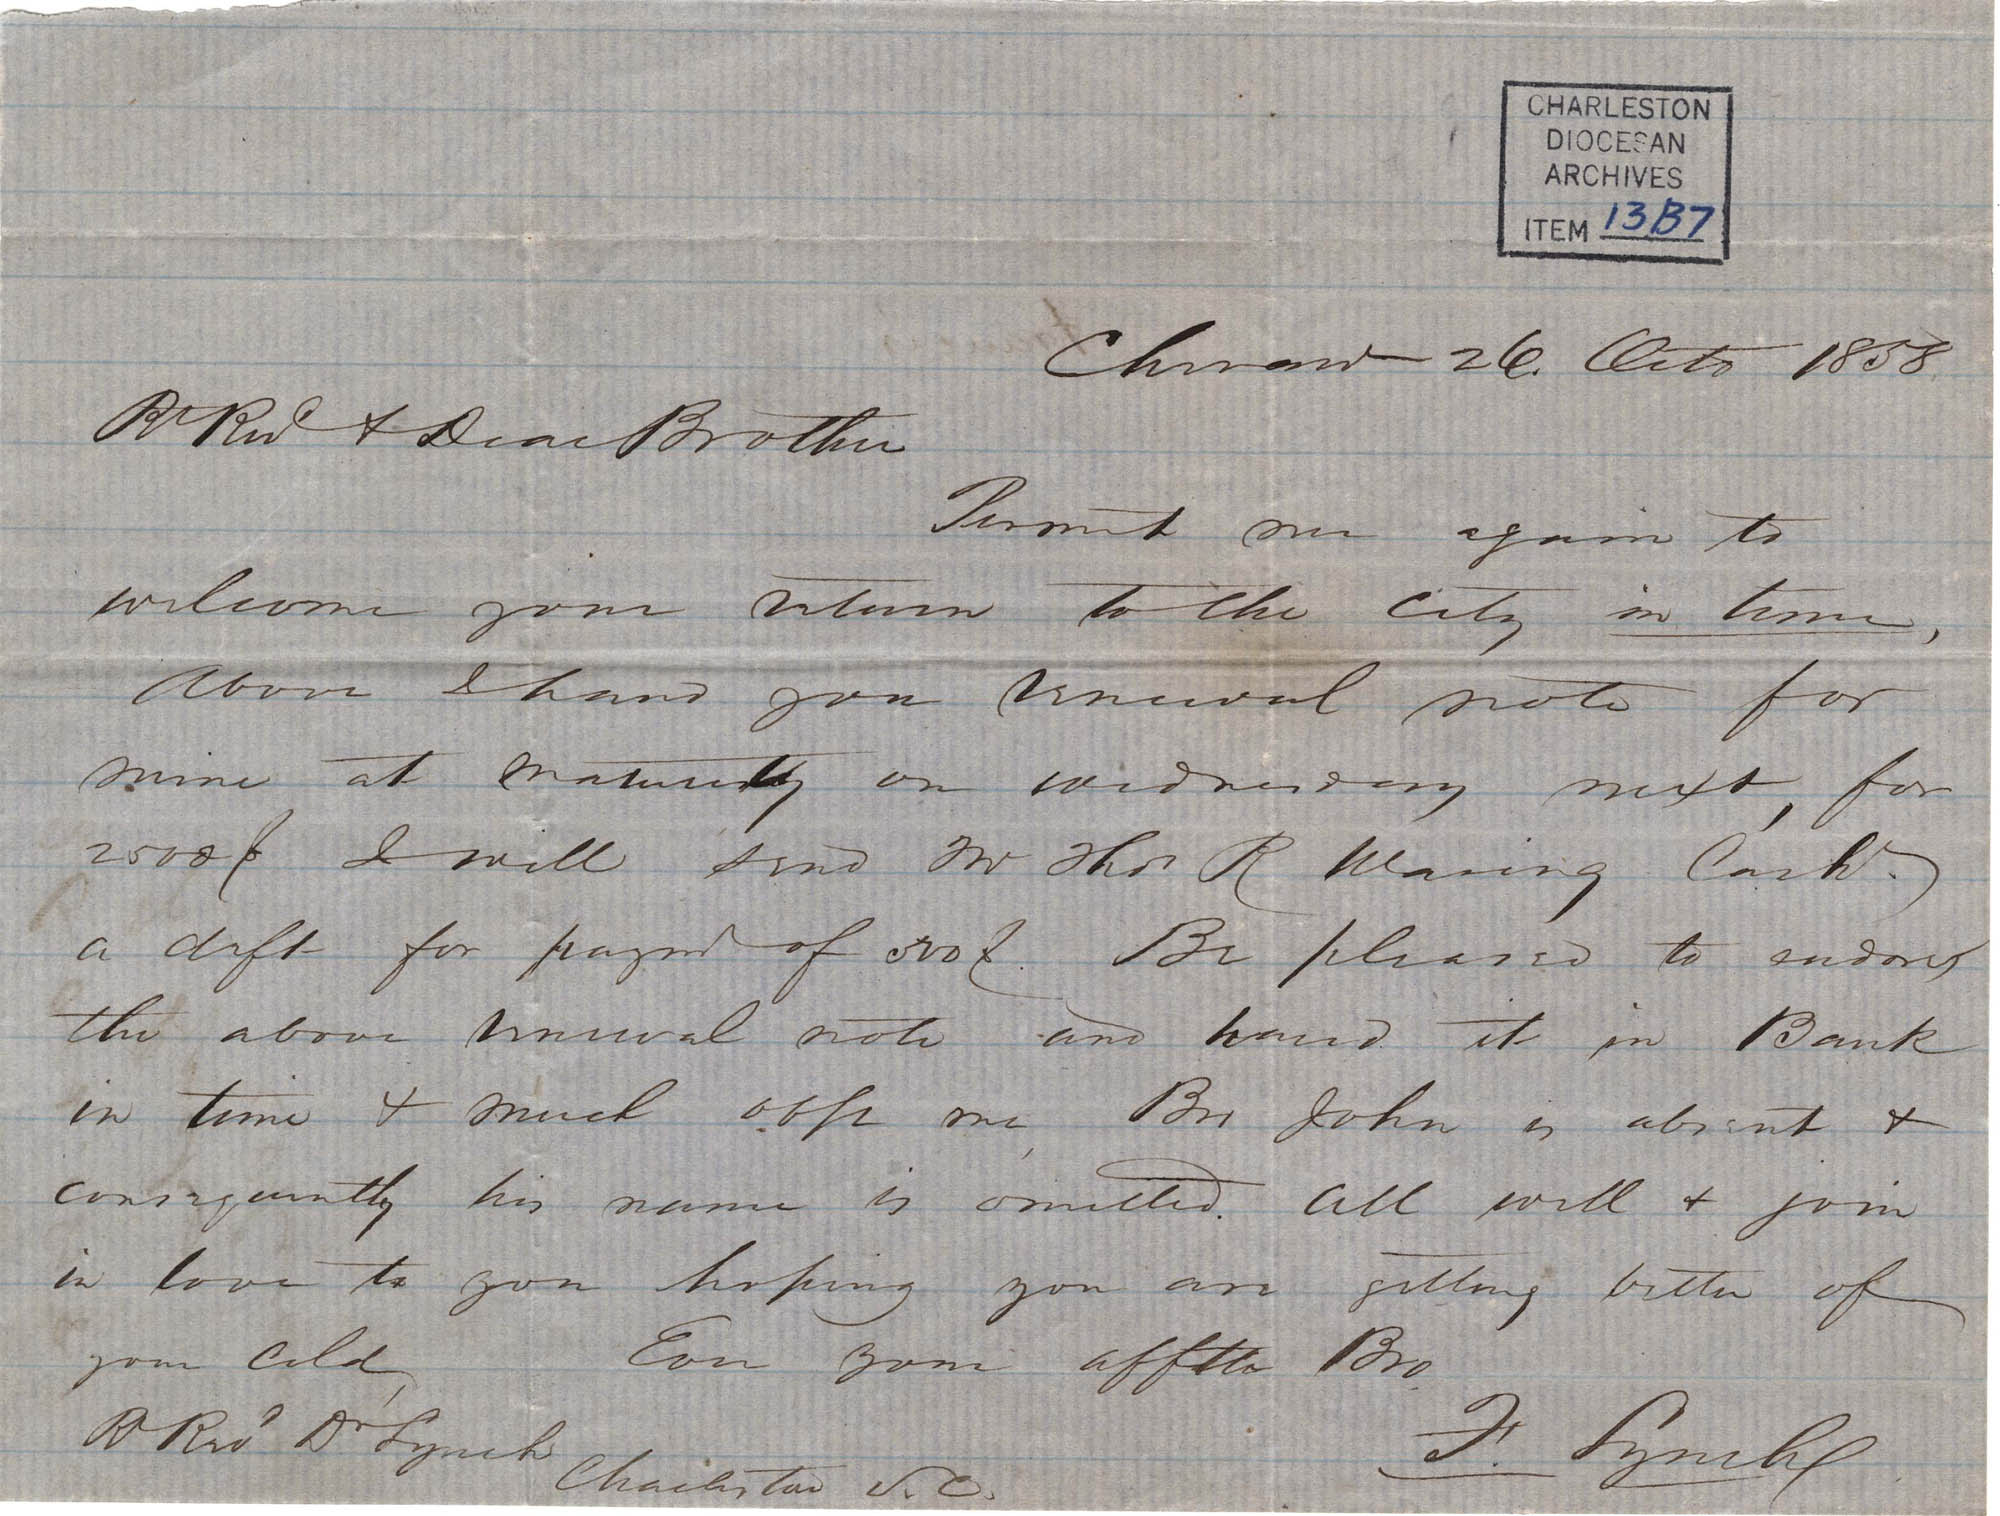 018. Francis Lynch to Bp Patrick Lynch -- October 26, 1858